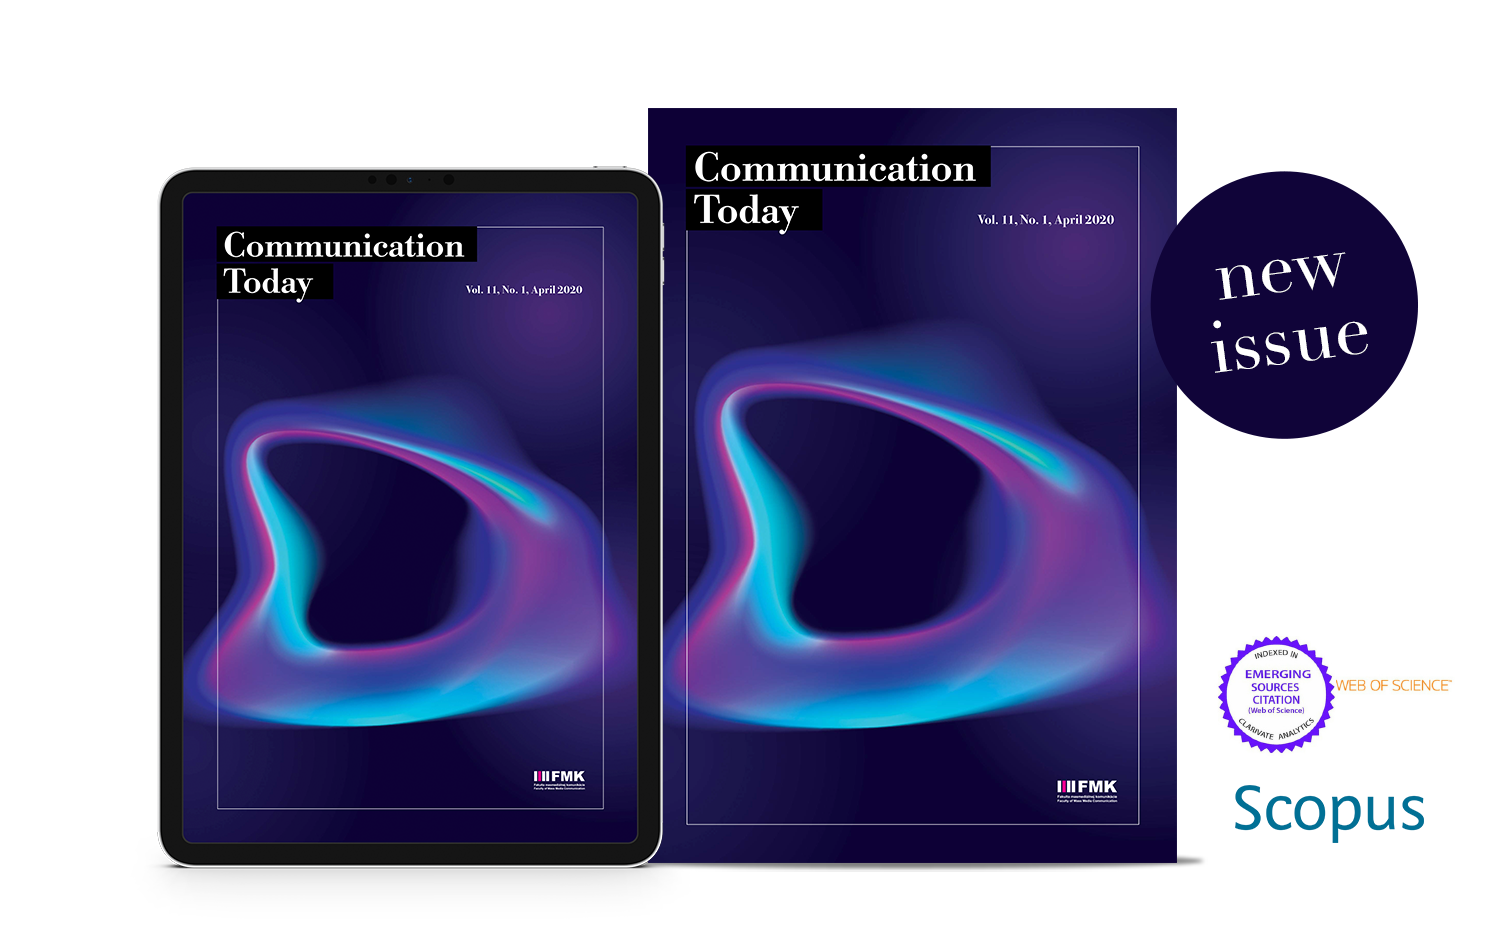 Communication Today vol. 11, no. 1 cover